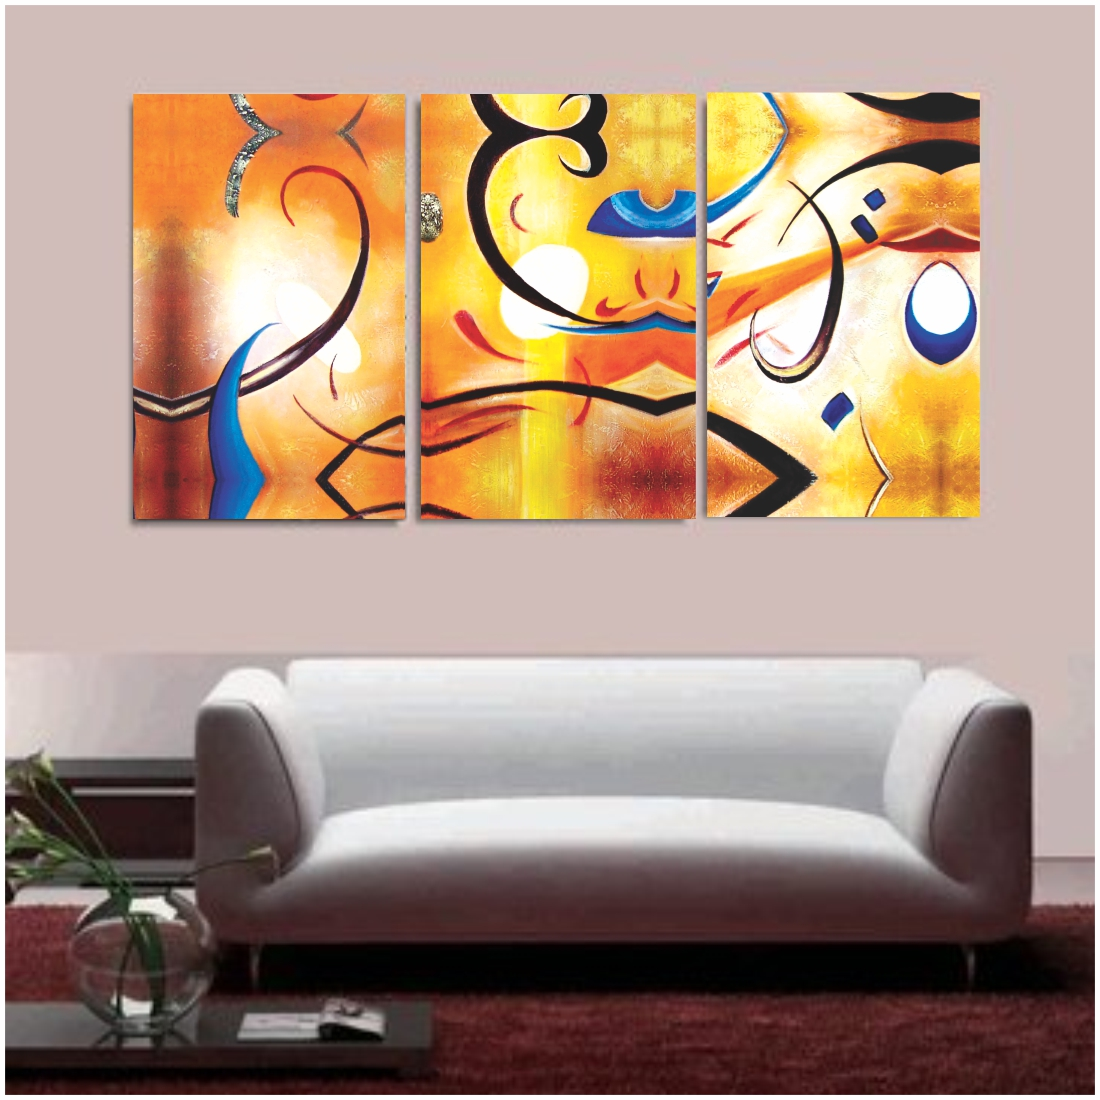 Clay Alder Home Happiness Abstract  Gallery Wrapped Canvas Painting, 12Inch X 18 Inch Each Set